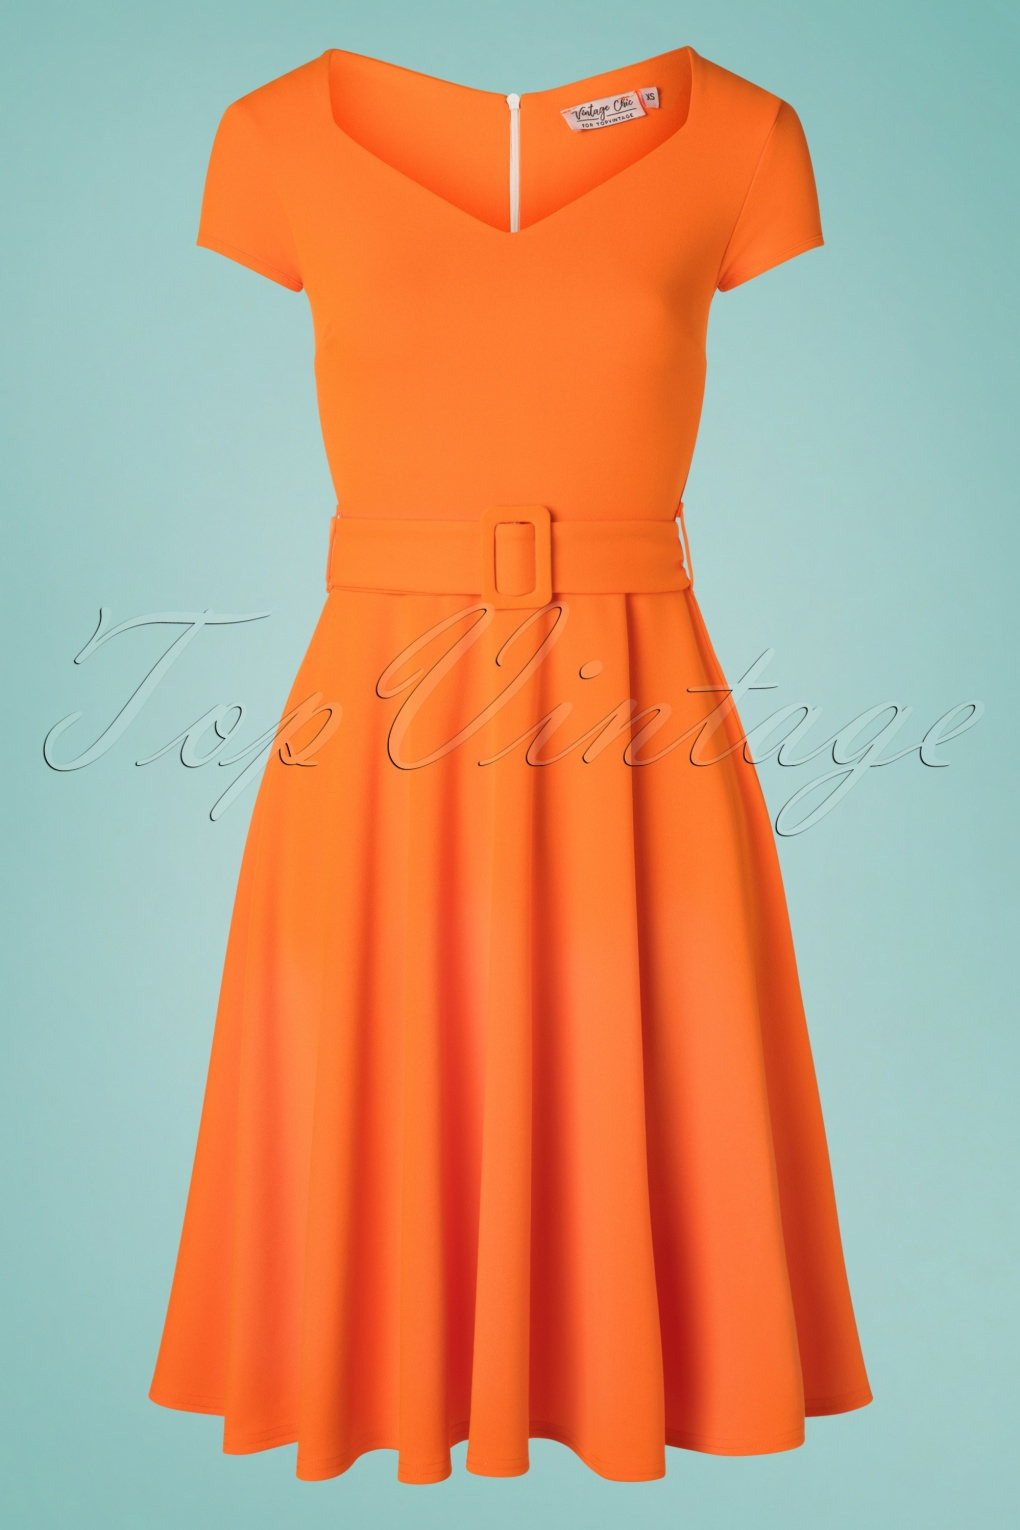 1960s Style Dresses, Clothing, Shoes UK 50s Myrtle Swing Dress in Orange £34.67 AT vintagedancer.com